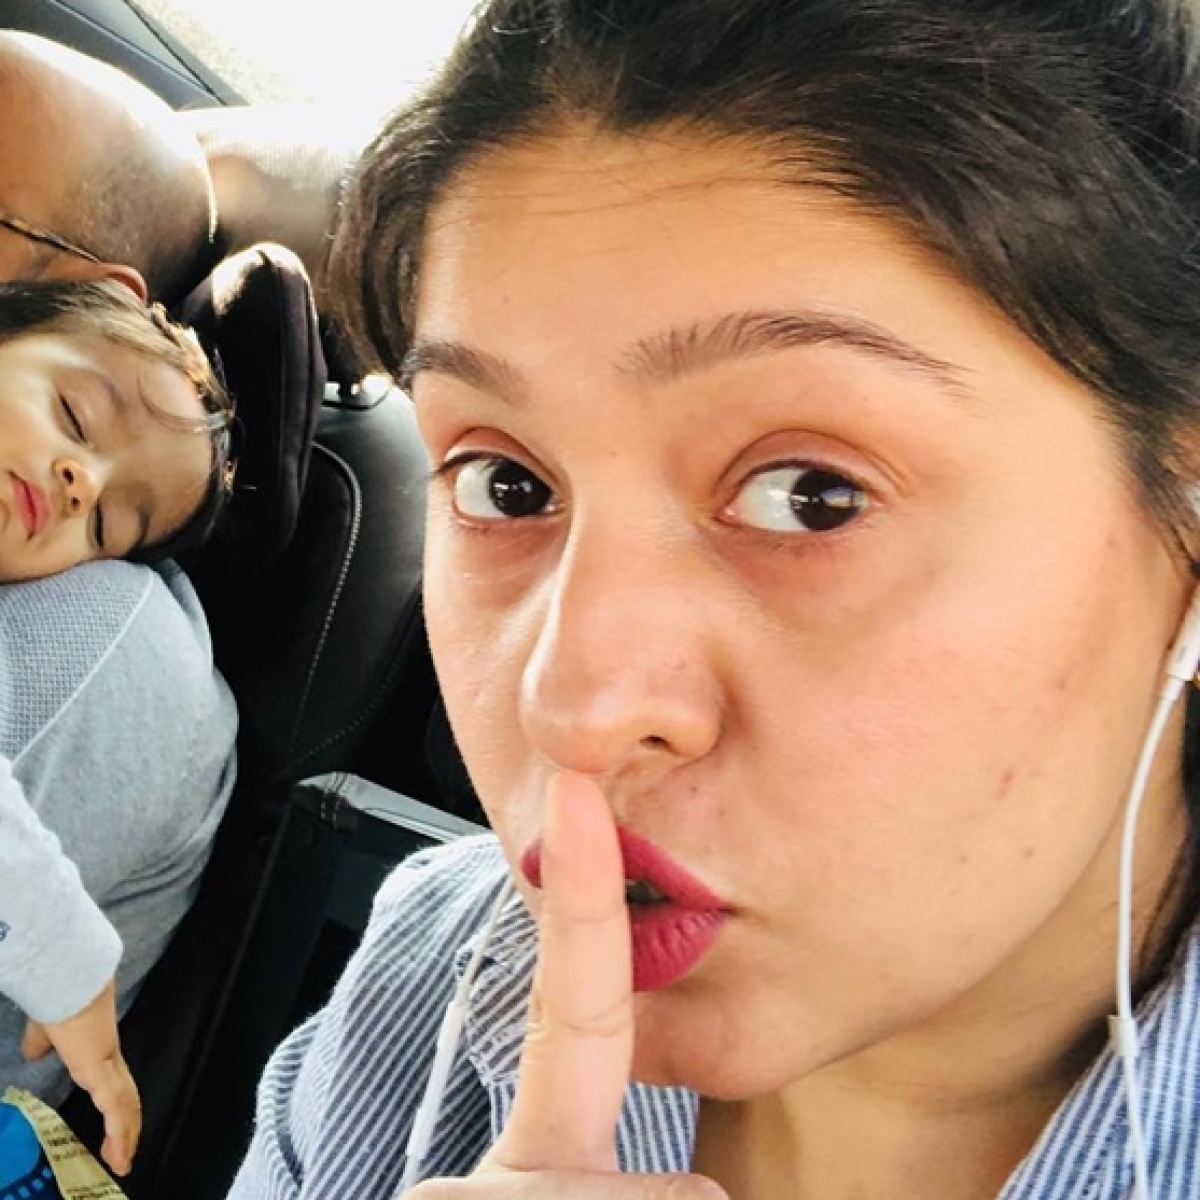 Has Sunidhi Chauhan parted ways from husband Hitesh Sonik after 8 years? Here's the truth